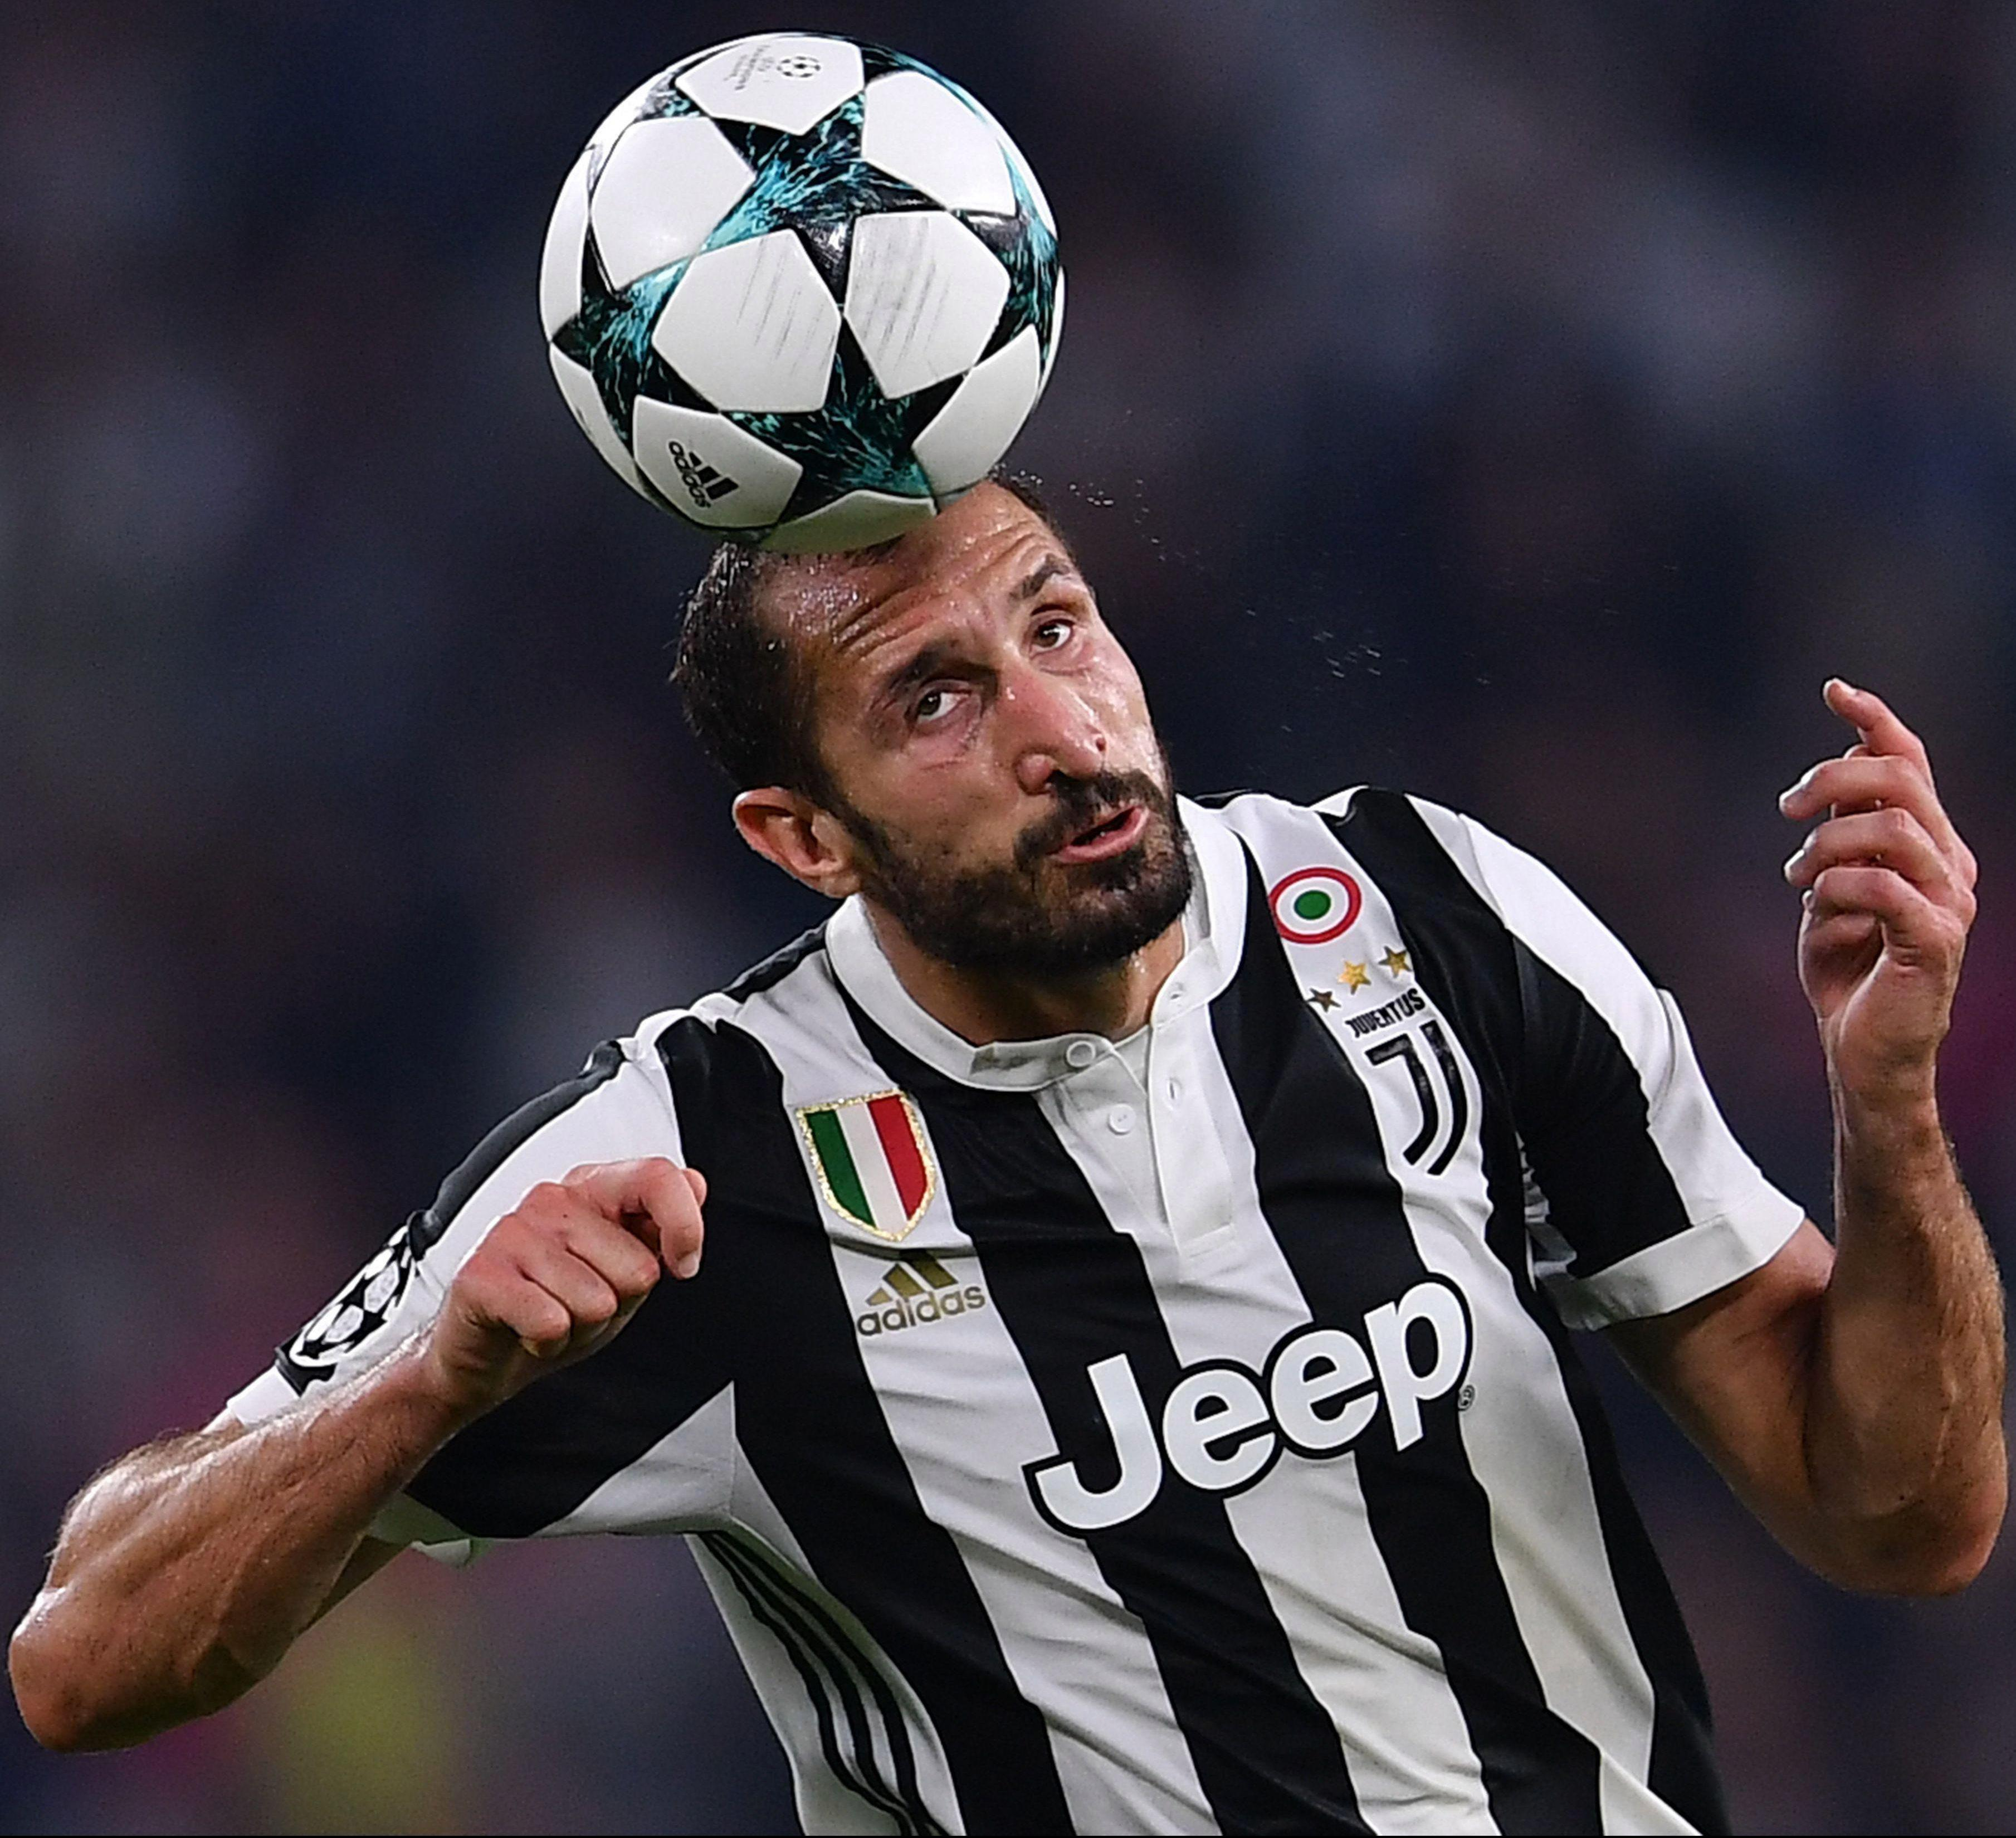 Giorgio Chiellini is set to pen a new deal with Juventus